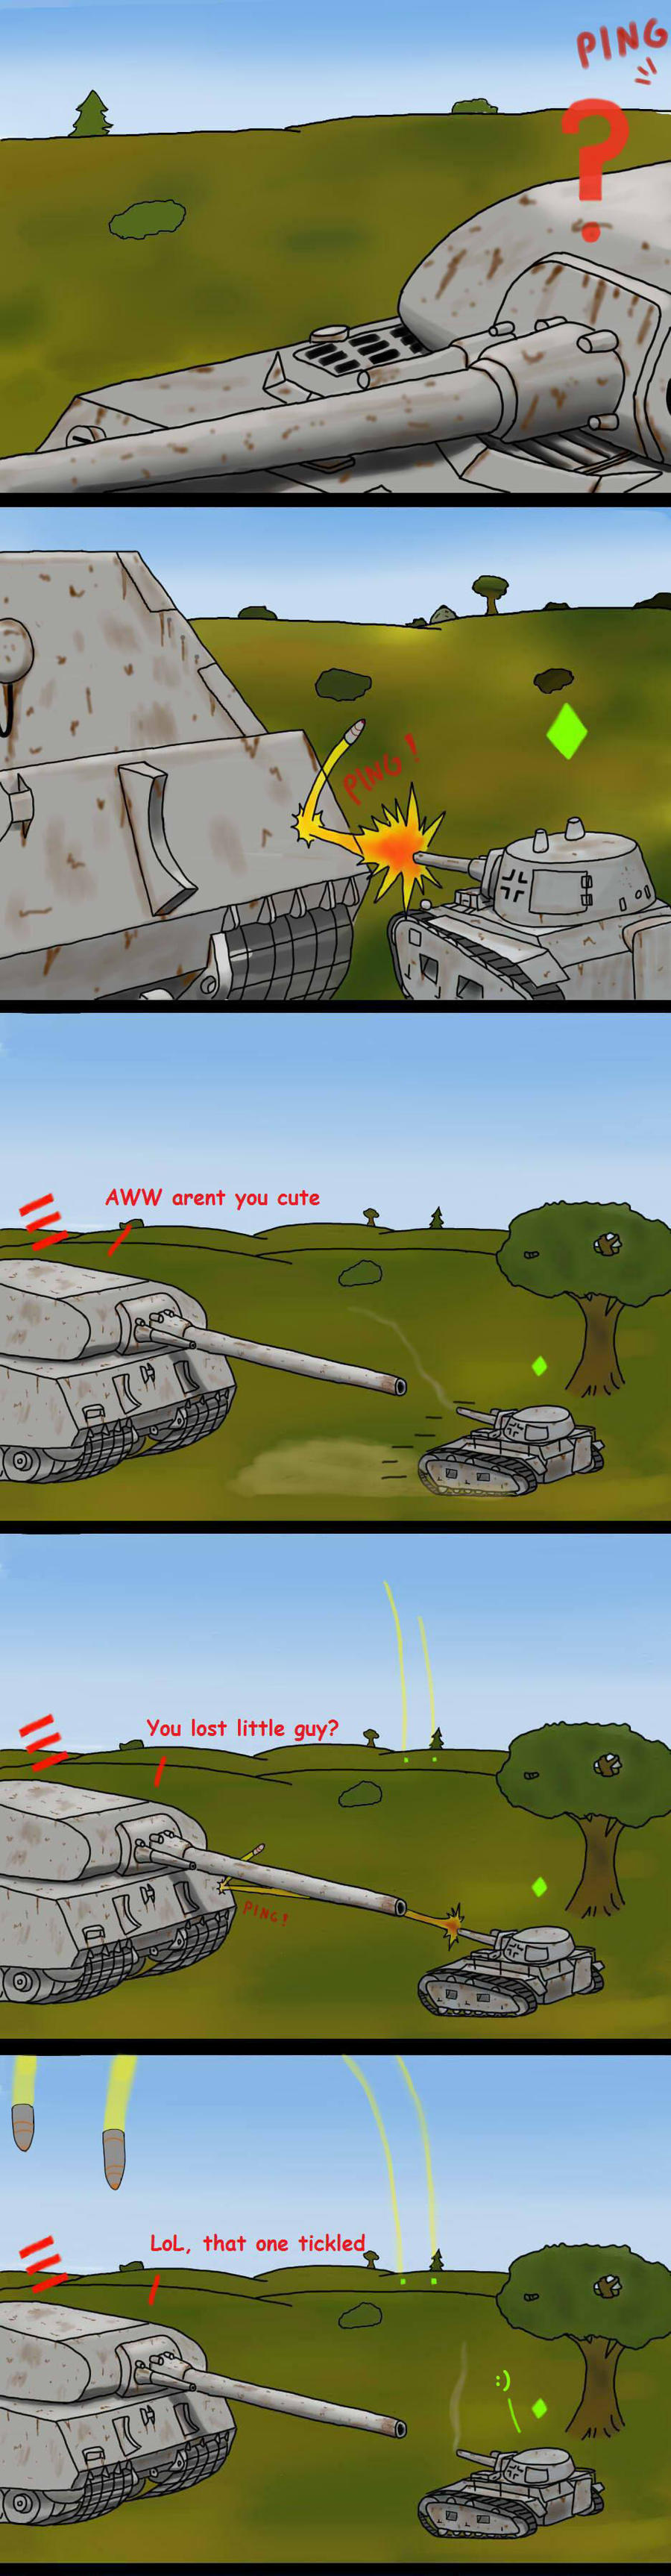 World of tanks comic 5 by thesourkraut on deviantart world of tanks comic 5 by thesourkraut publicscrutiny Image collections